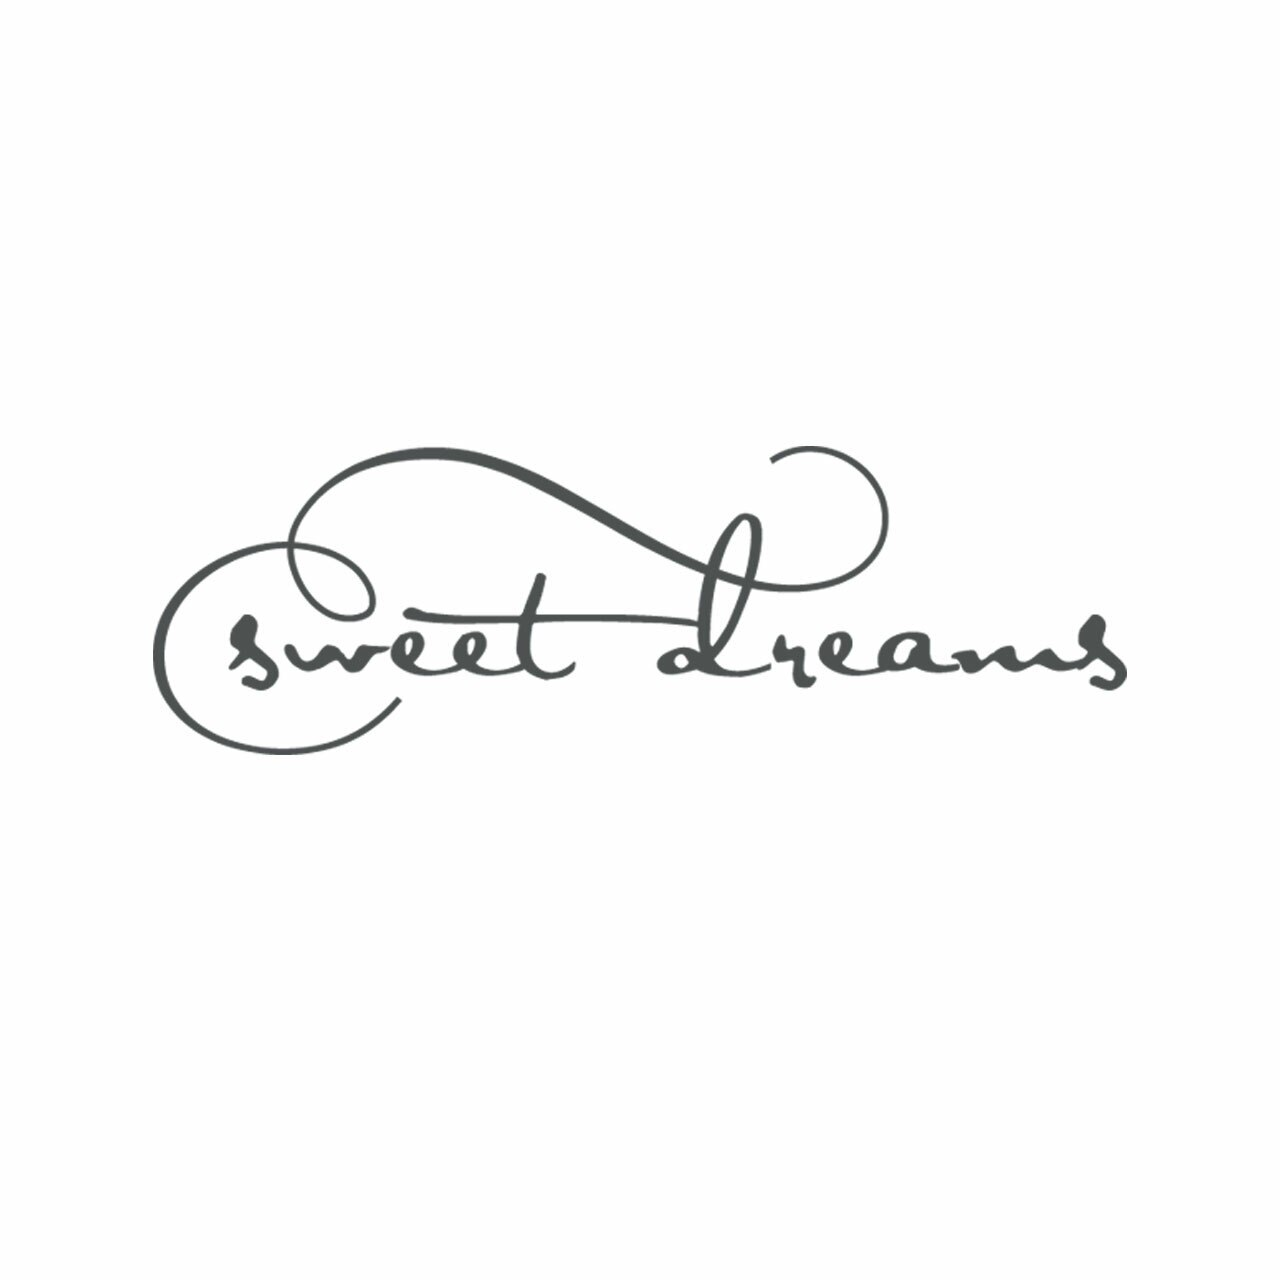 Sweet dreams vinyl lettering layout in charcoal grey on a white background